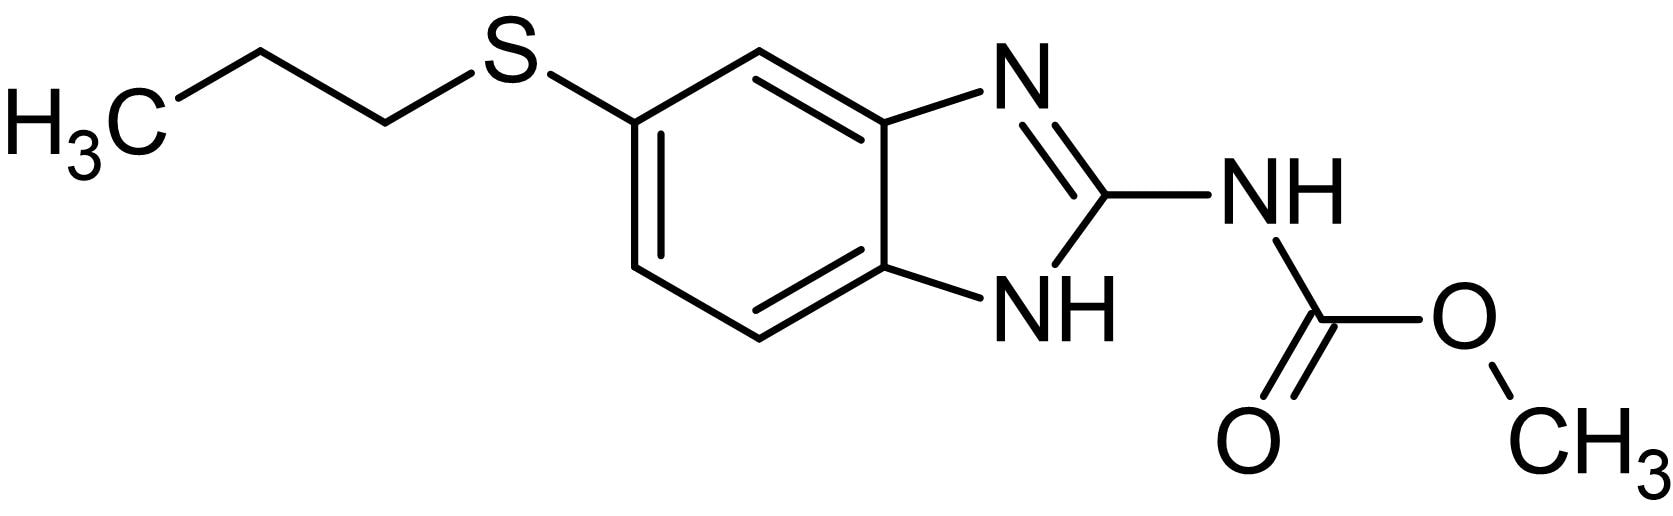 Chemical Structure - Albendazole, Microtubule depolymerizing agent (ab141241)